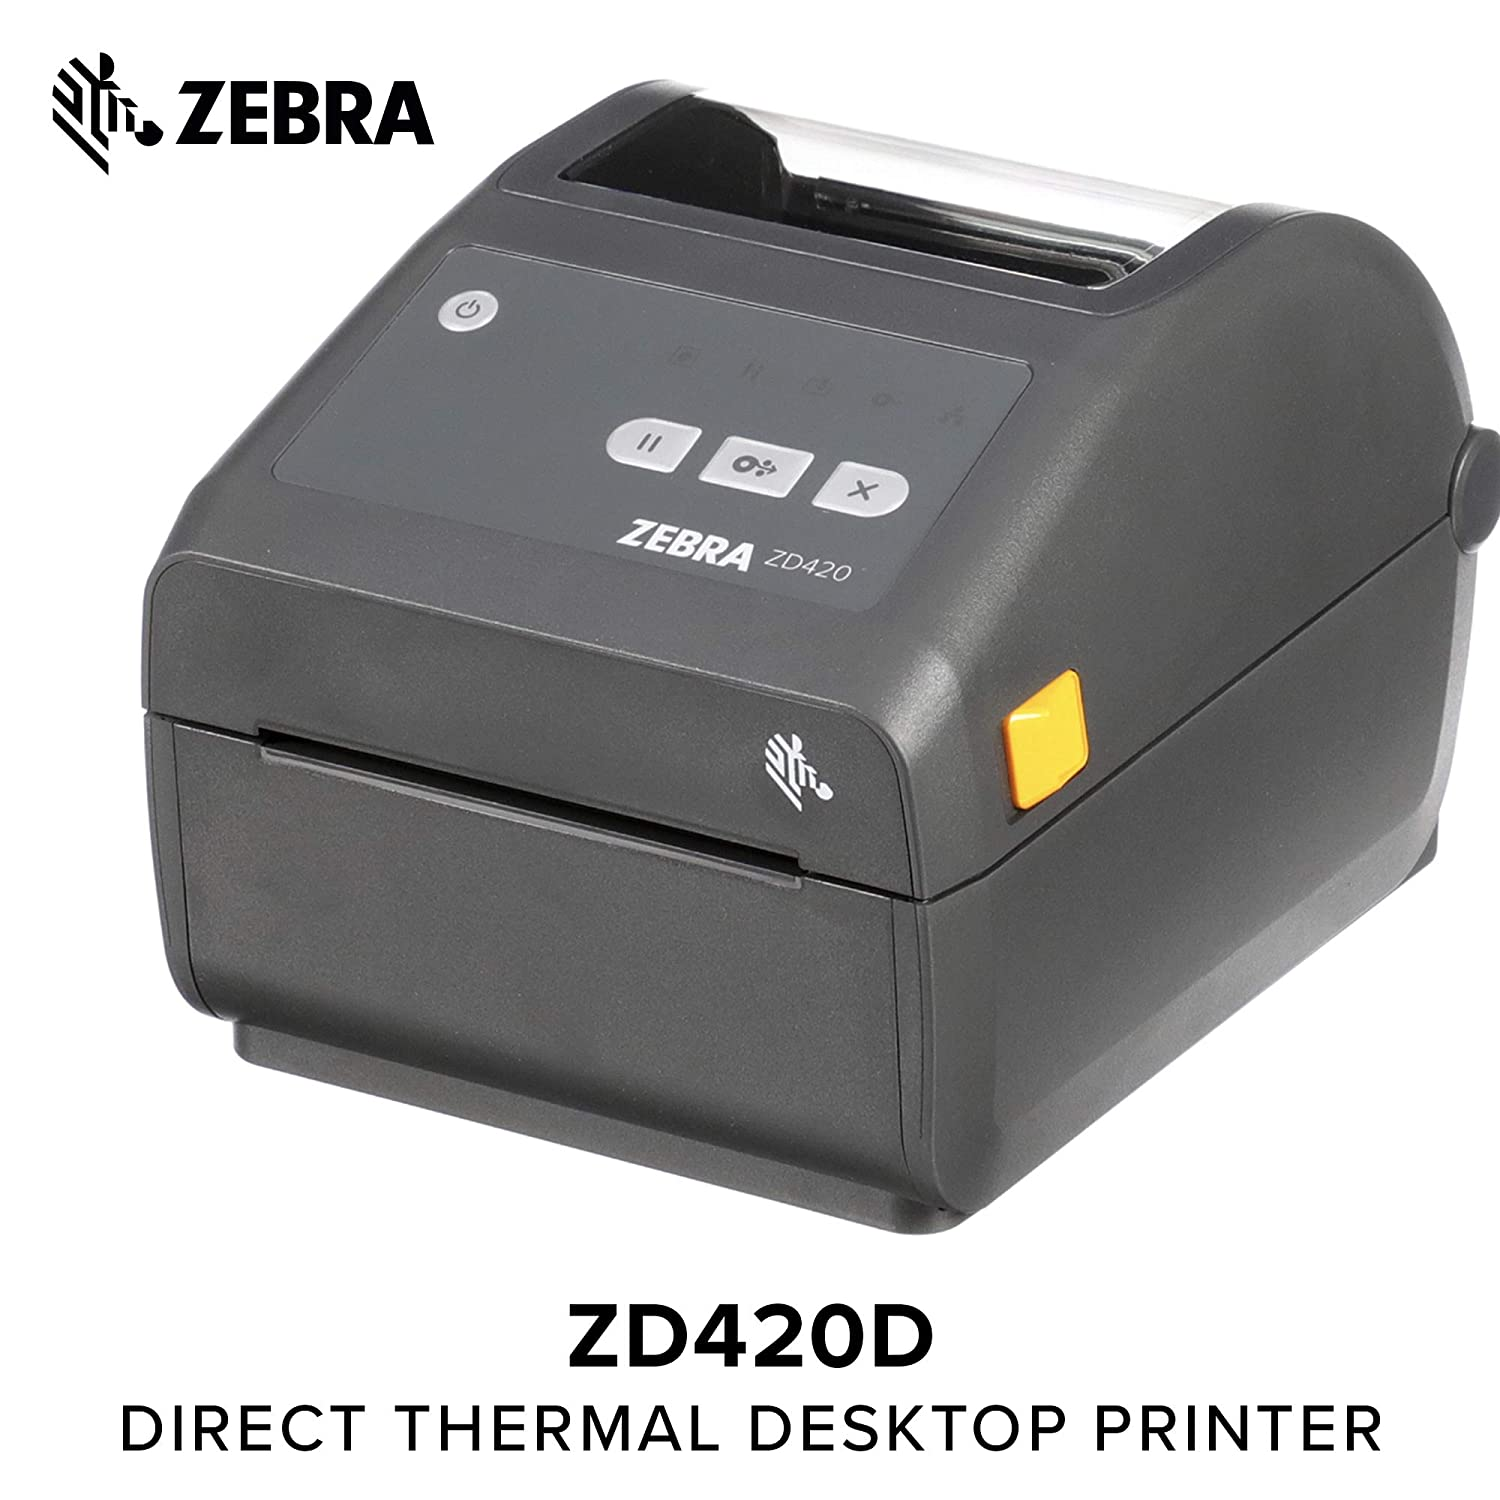 Zebra - ZD420d Direct Thermal Desktop Printer for Labels and Barcodes -  Print Width 4 in - 203 dpi - Interface: WiFi, Bluetooth, USB -